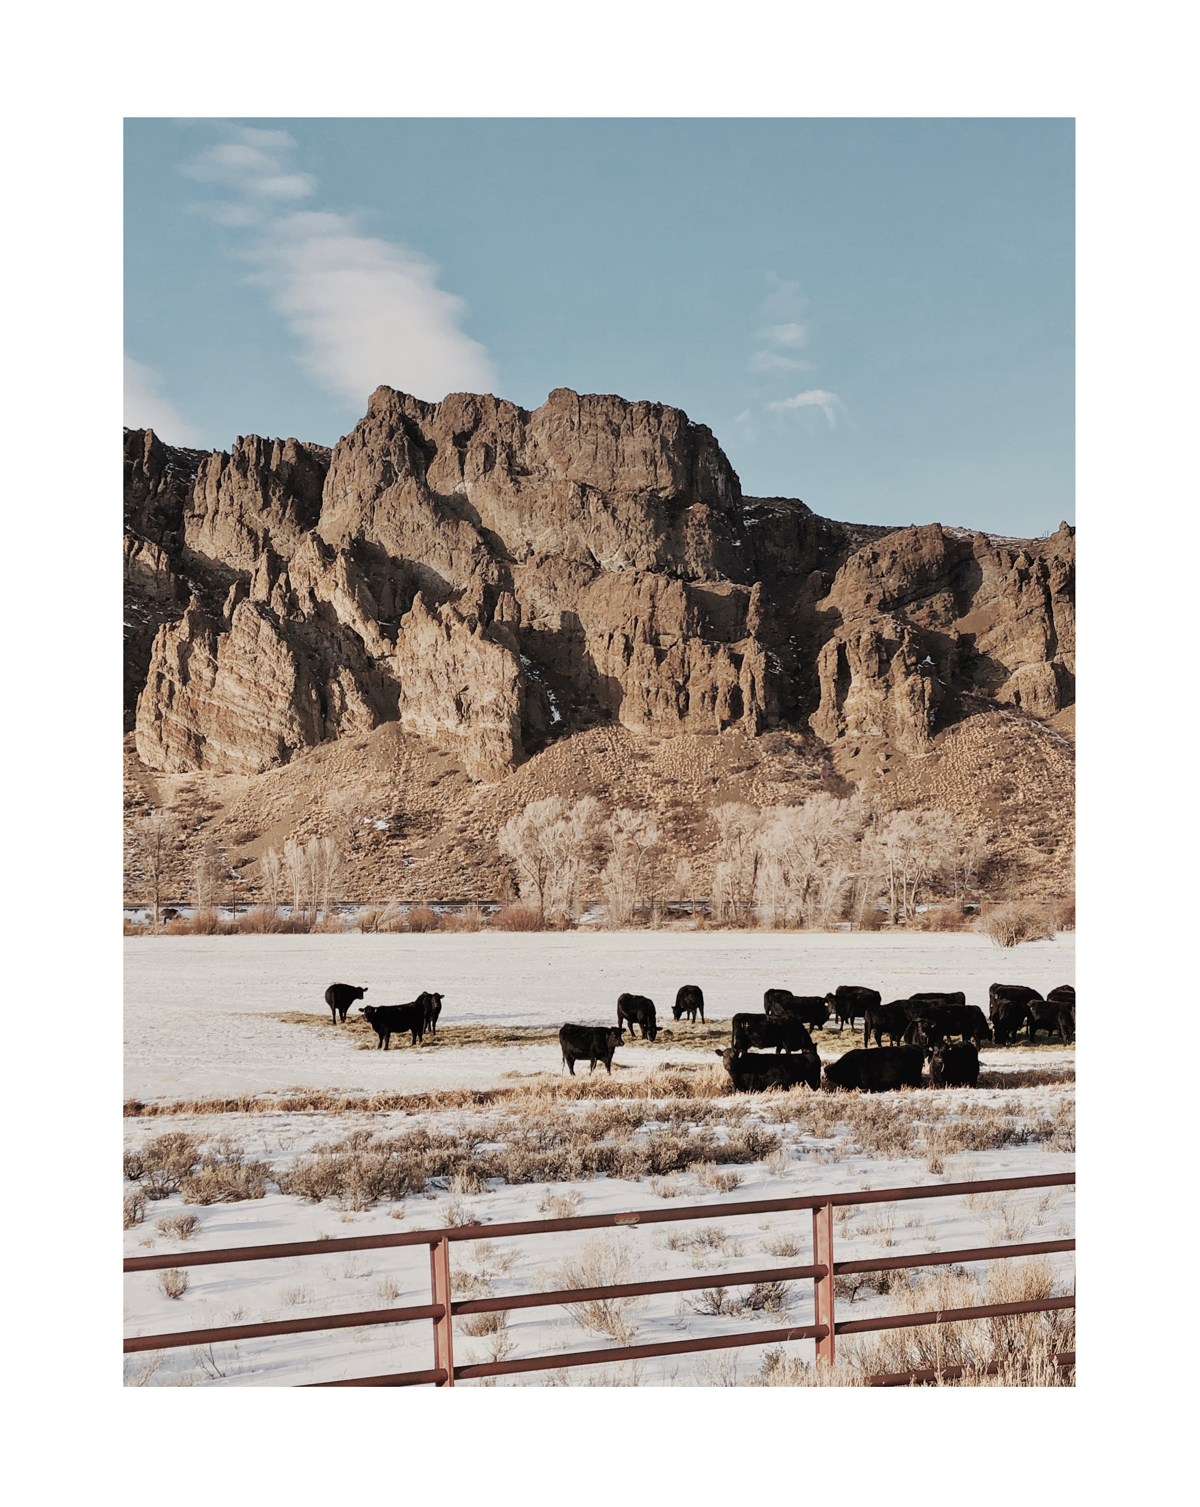 Photo by Molly Olwig of cattle grazing in front of rock formations